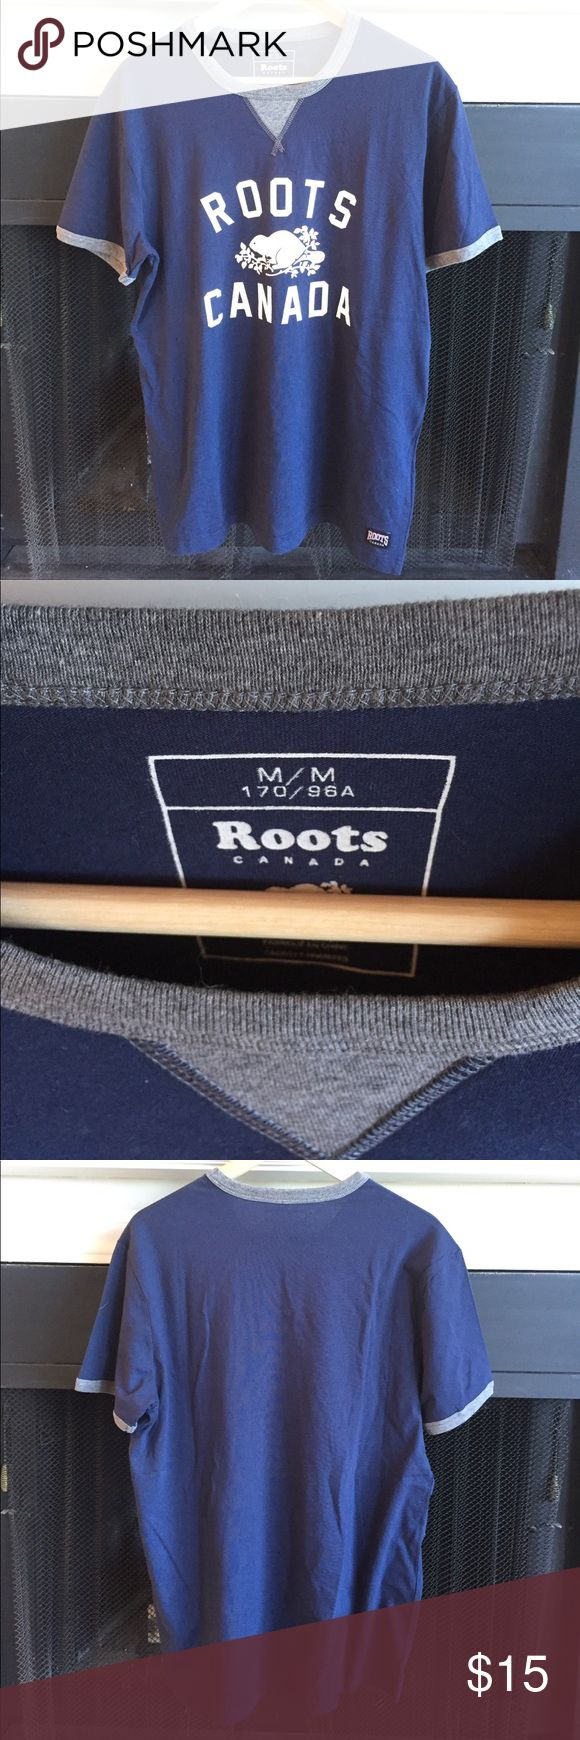 Trend Brand New Roots T shirt